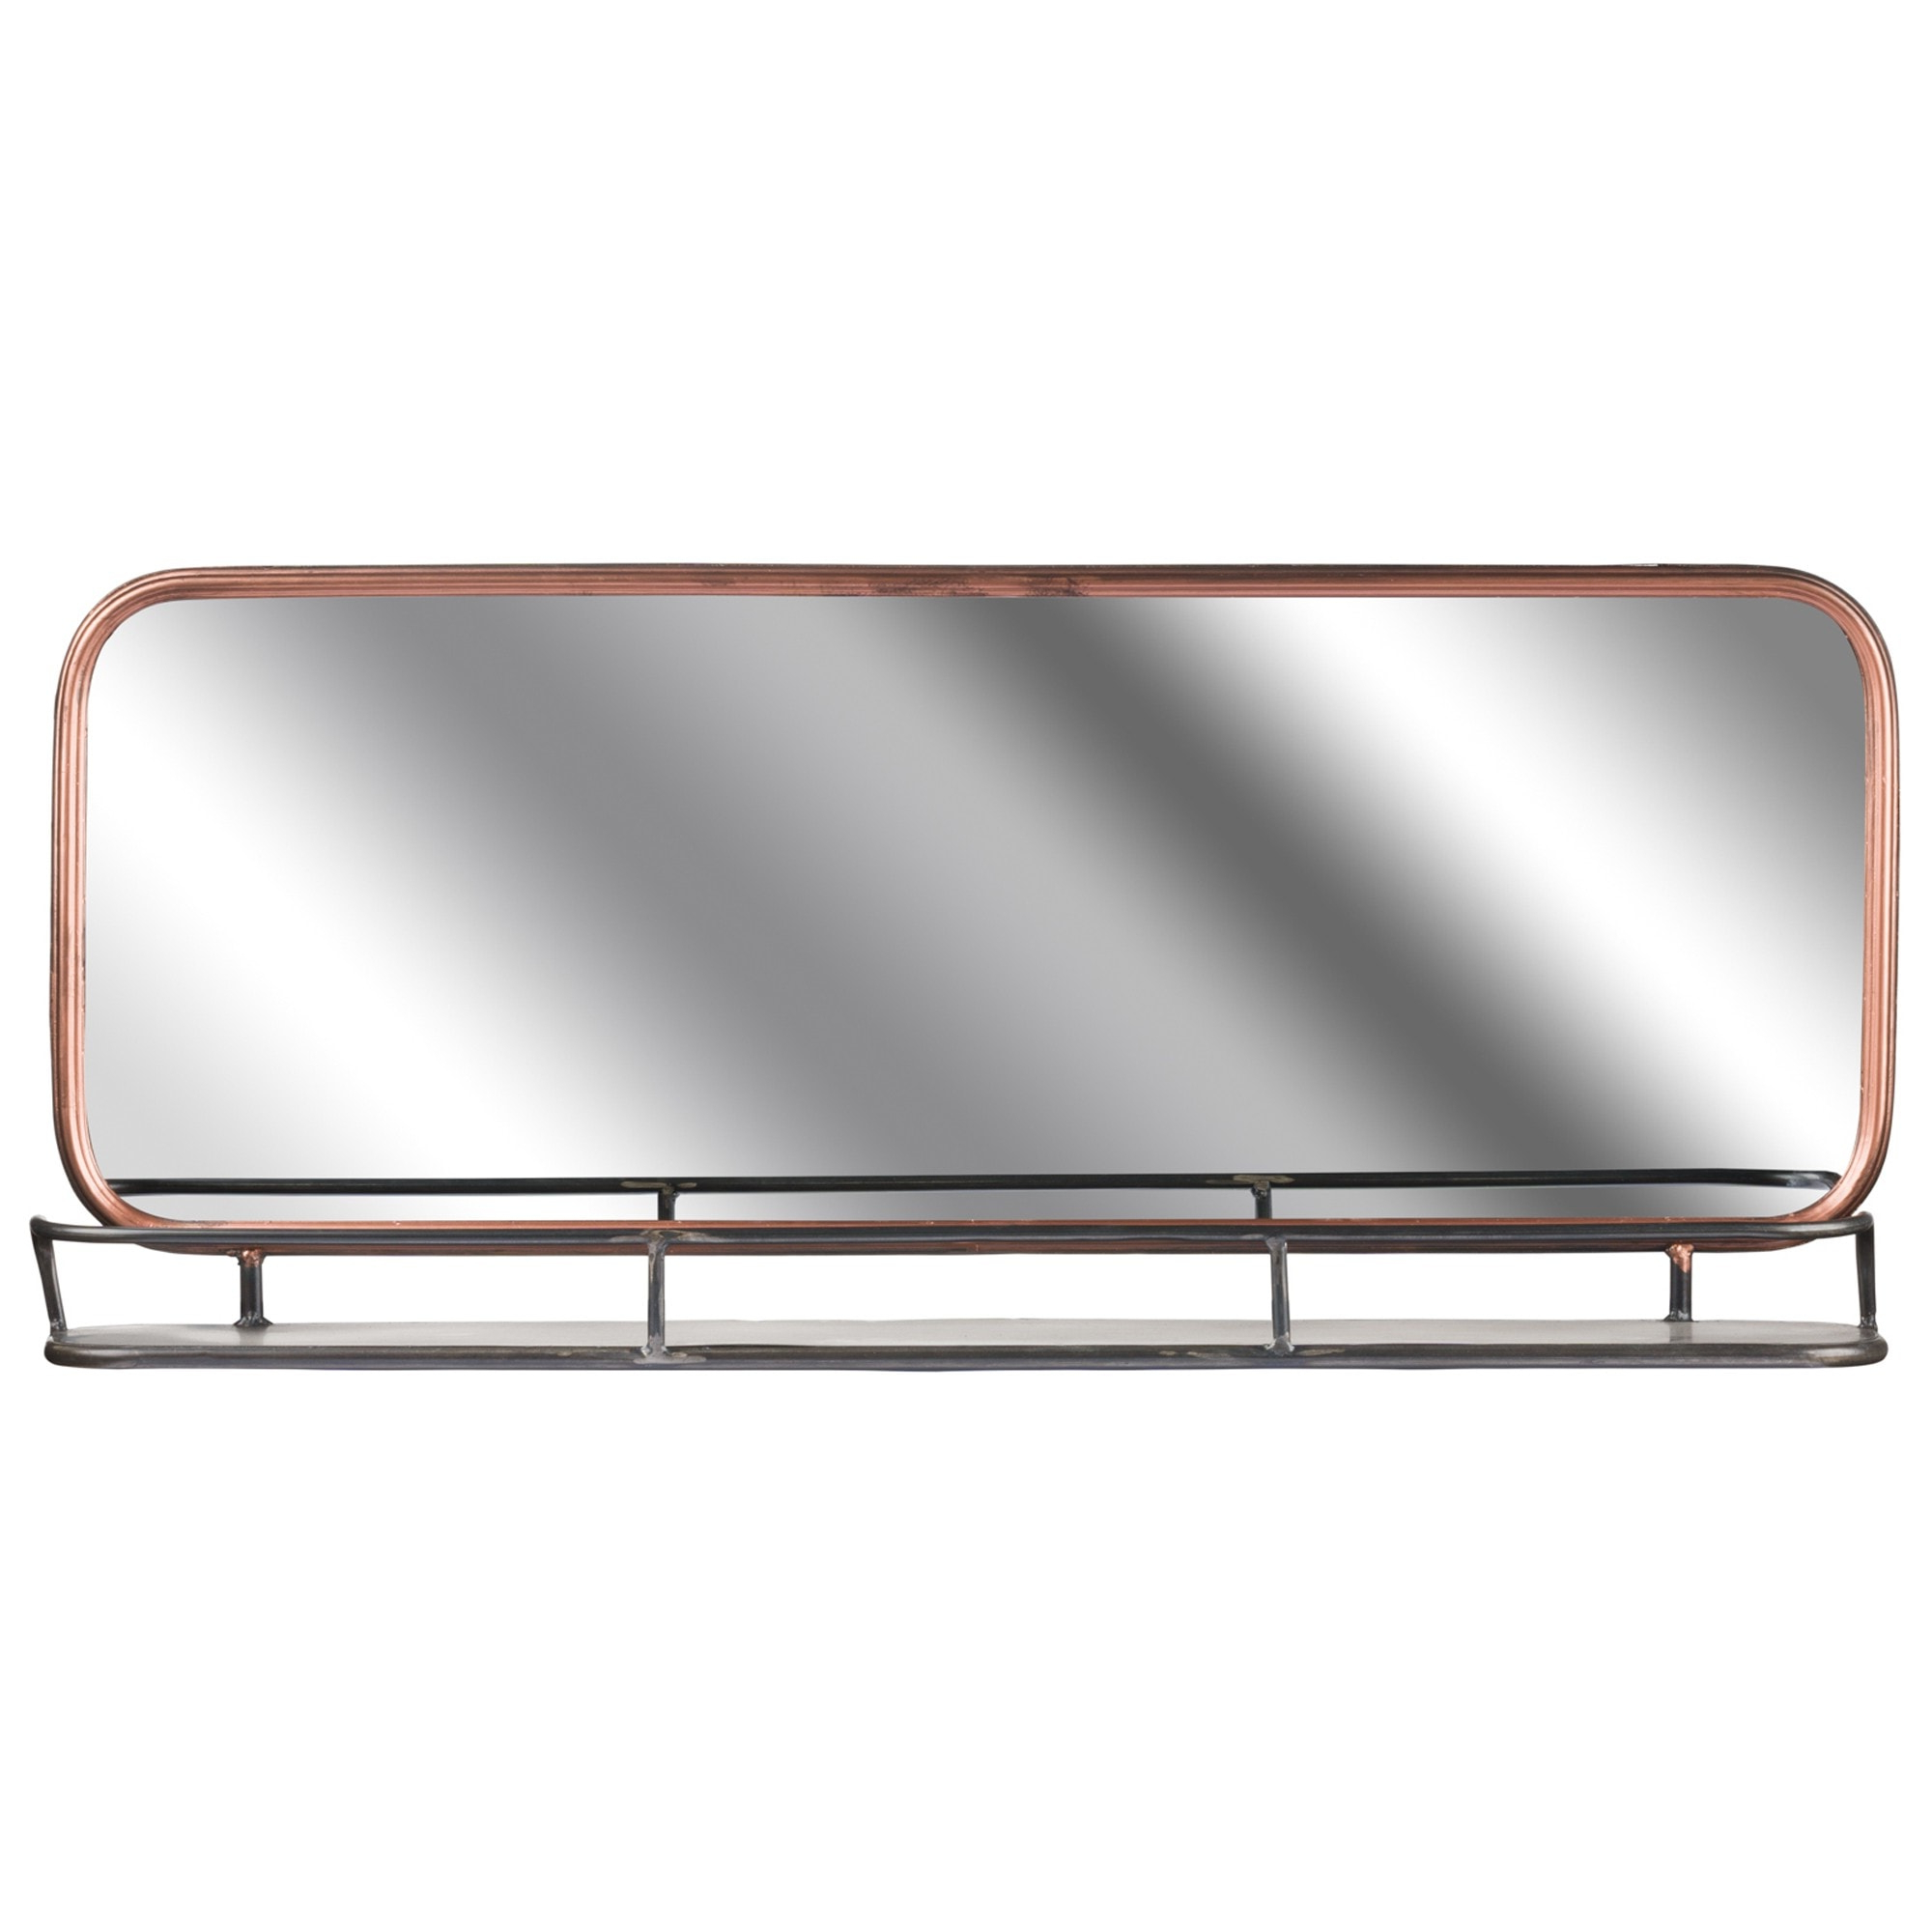 2020 Industrial Wall Mirrors In Industrial Copper Effect Wall Mirror With Shelf (View 2 of 20)